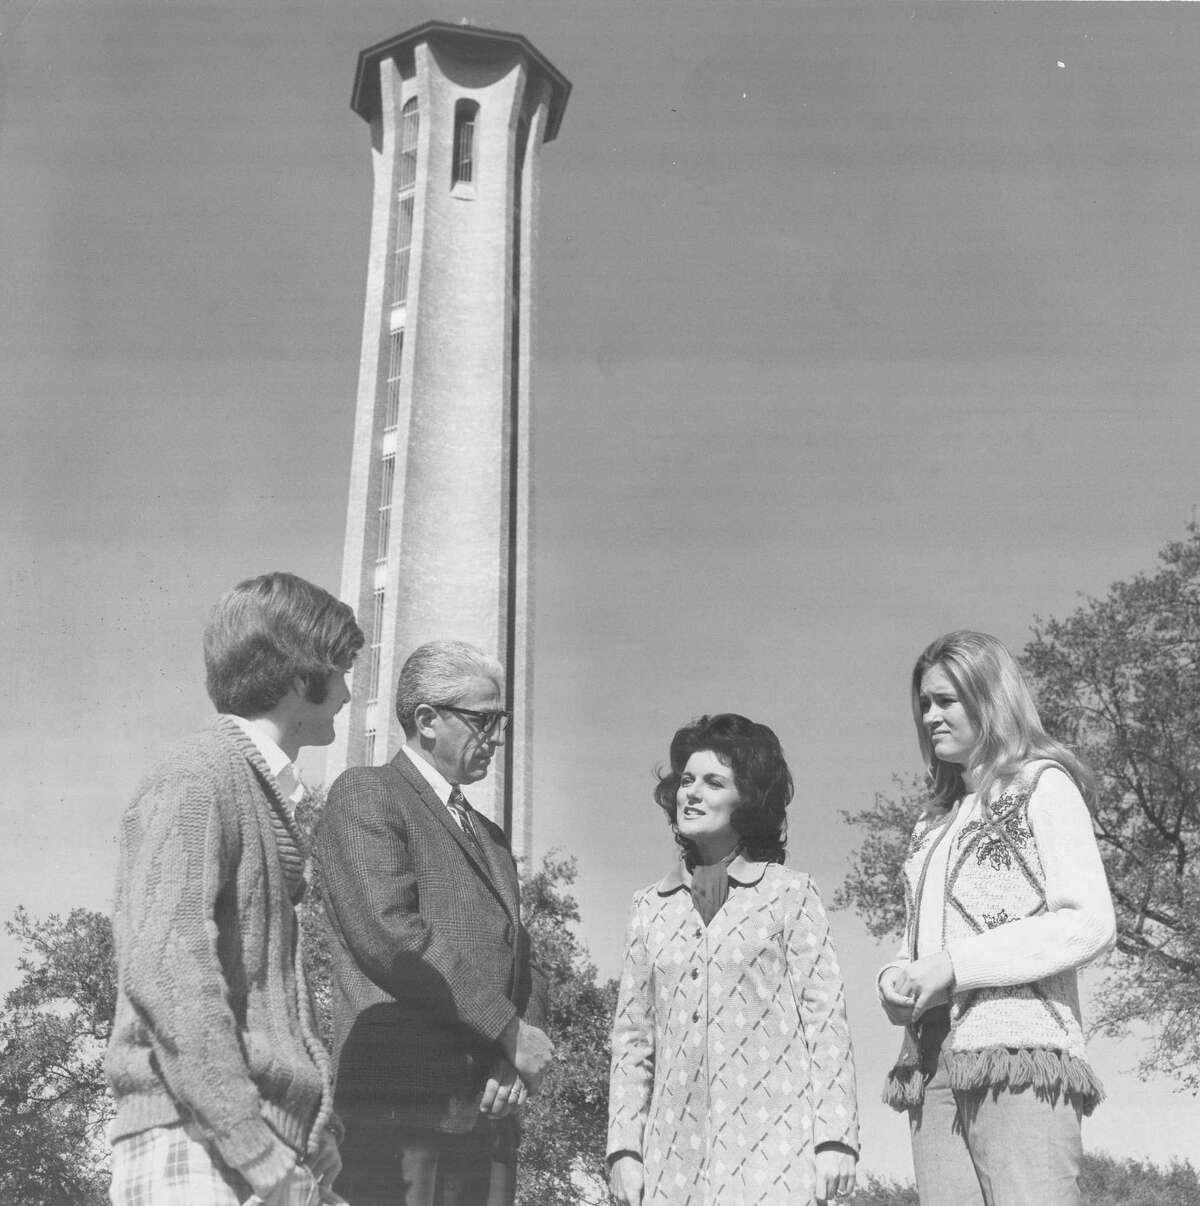 WOAI-TV's Martha Buchanan talks with Trinity University's Dean of Studen Affairs J.C. Pool and students Lou Ann Weber and Rex Smith on campus during the making of a documentary shown on the station in 1971.